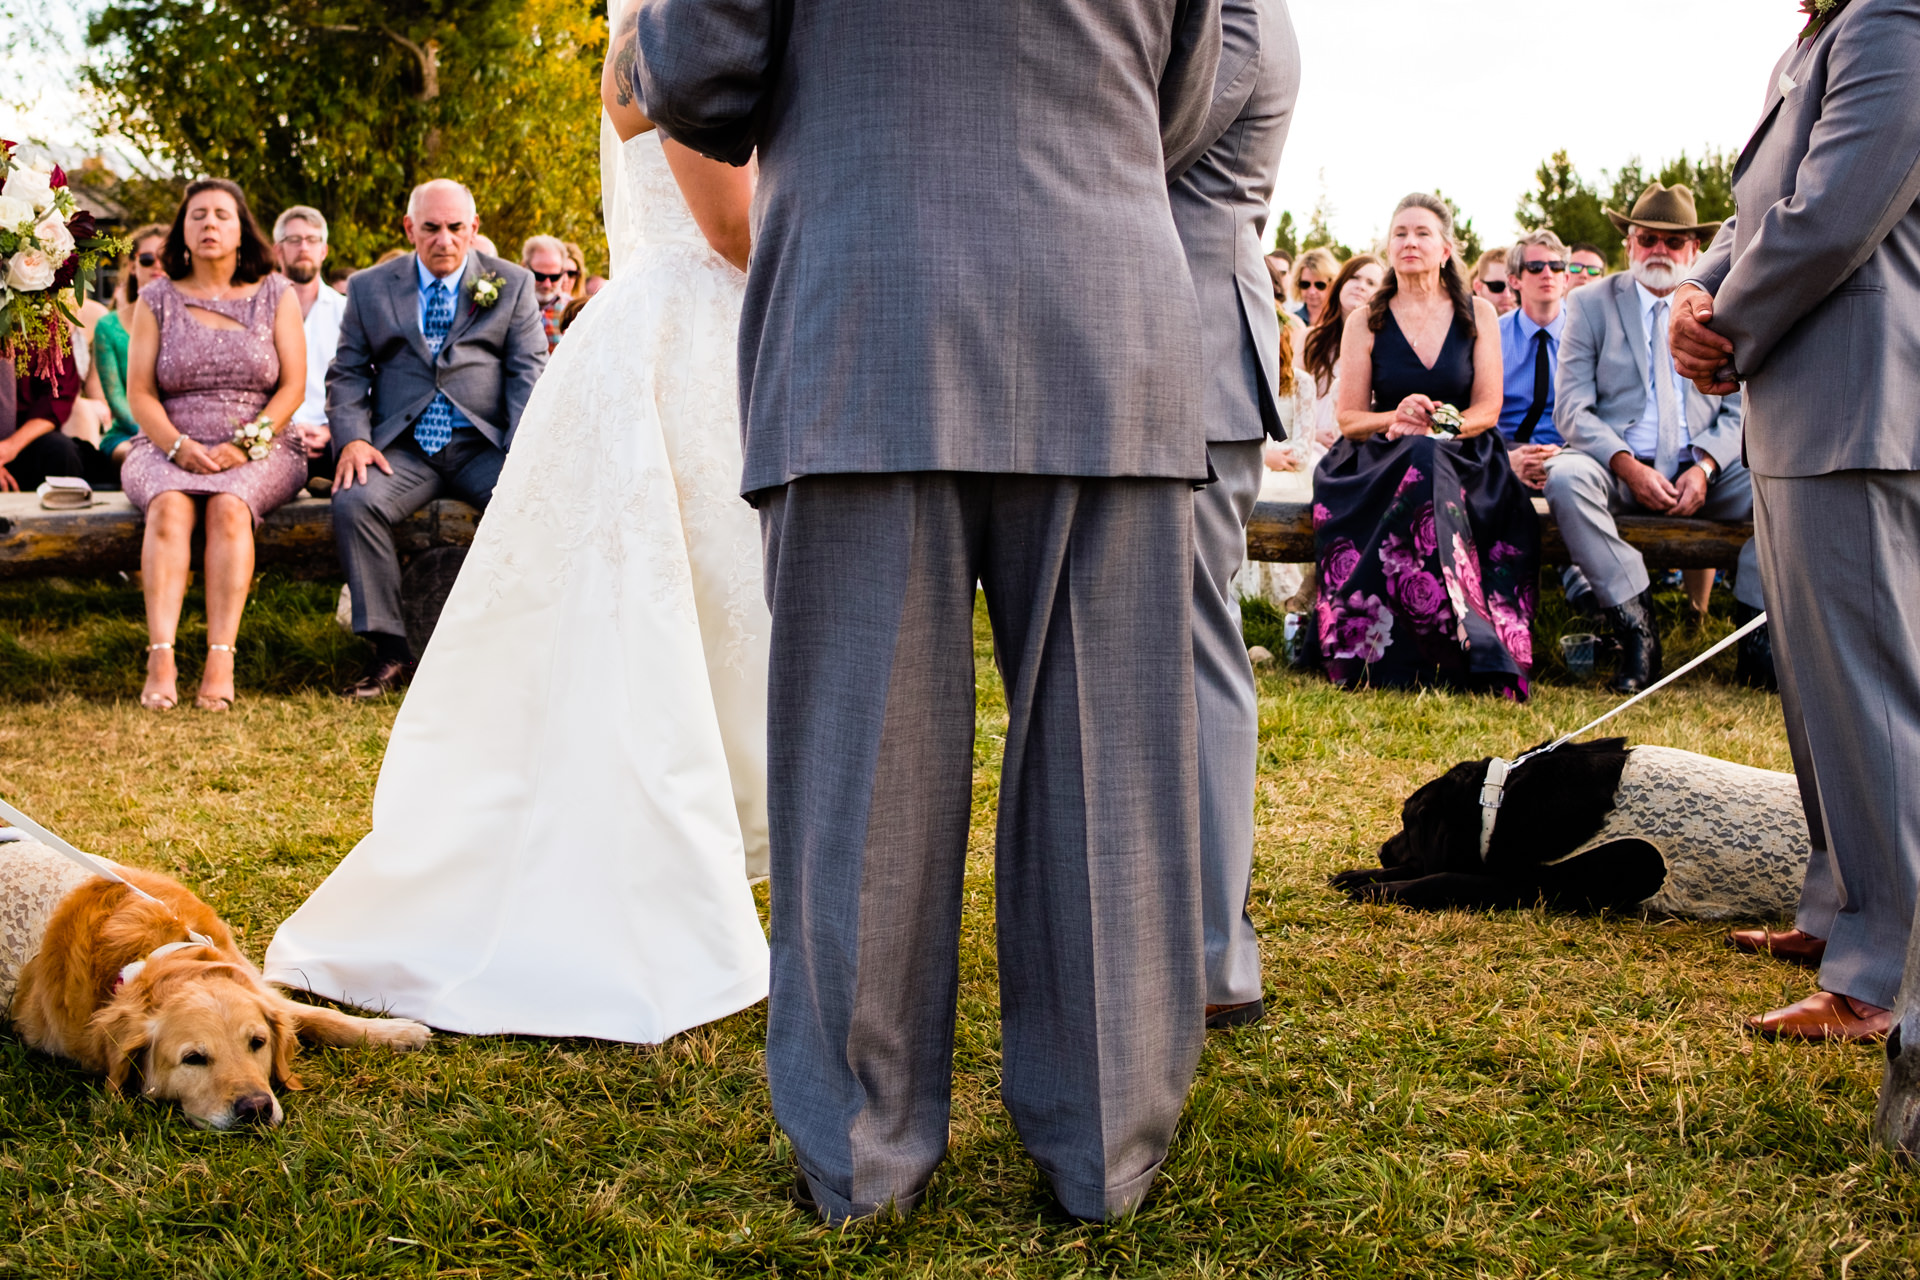 Kent Meireis, of Montana, is a wedding photographer for Grand Lake Colorado